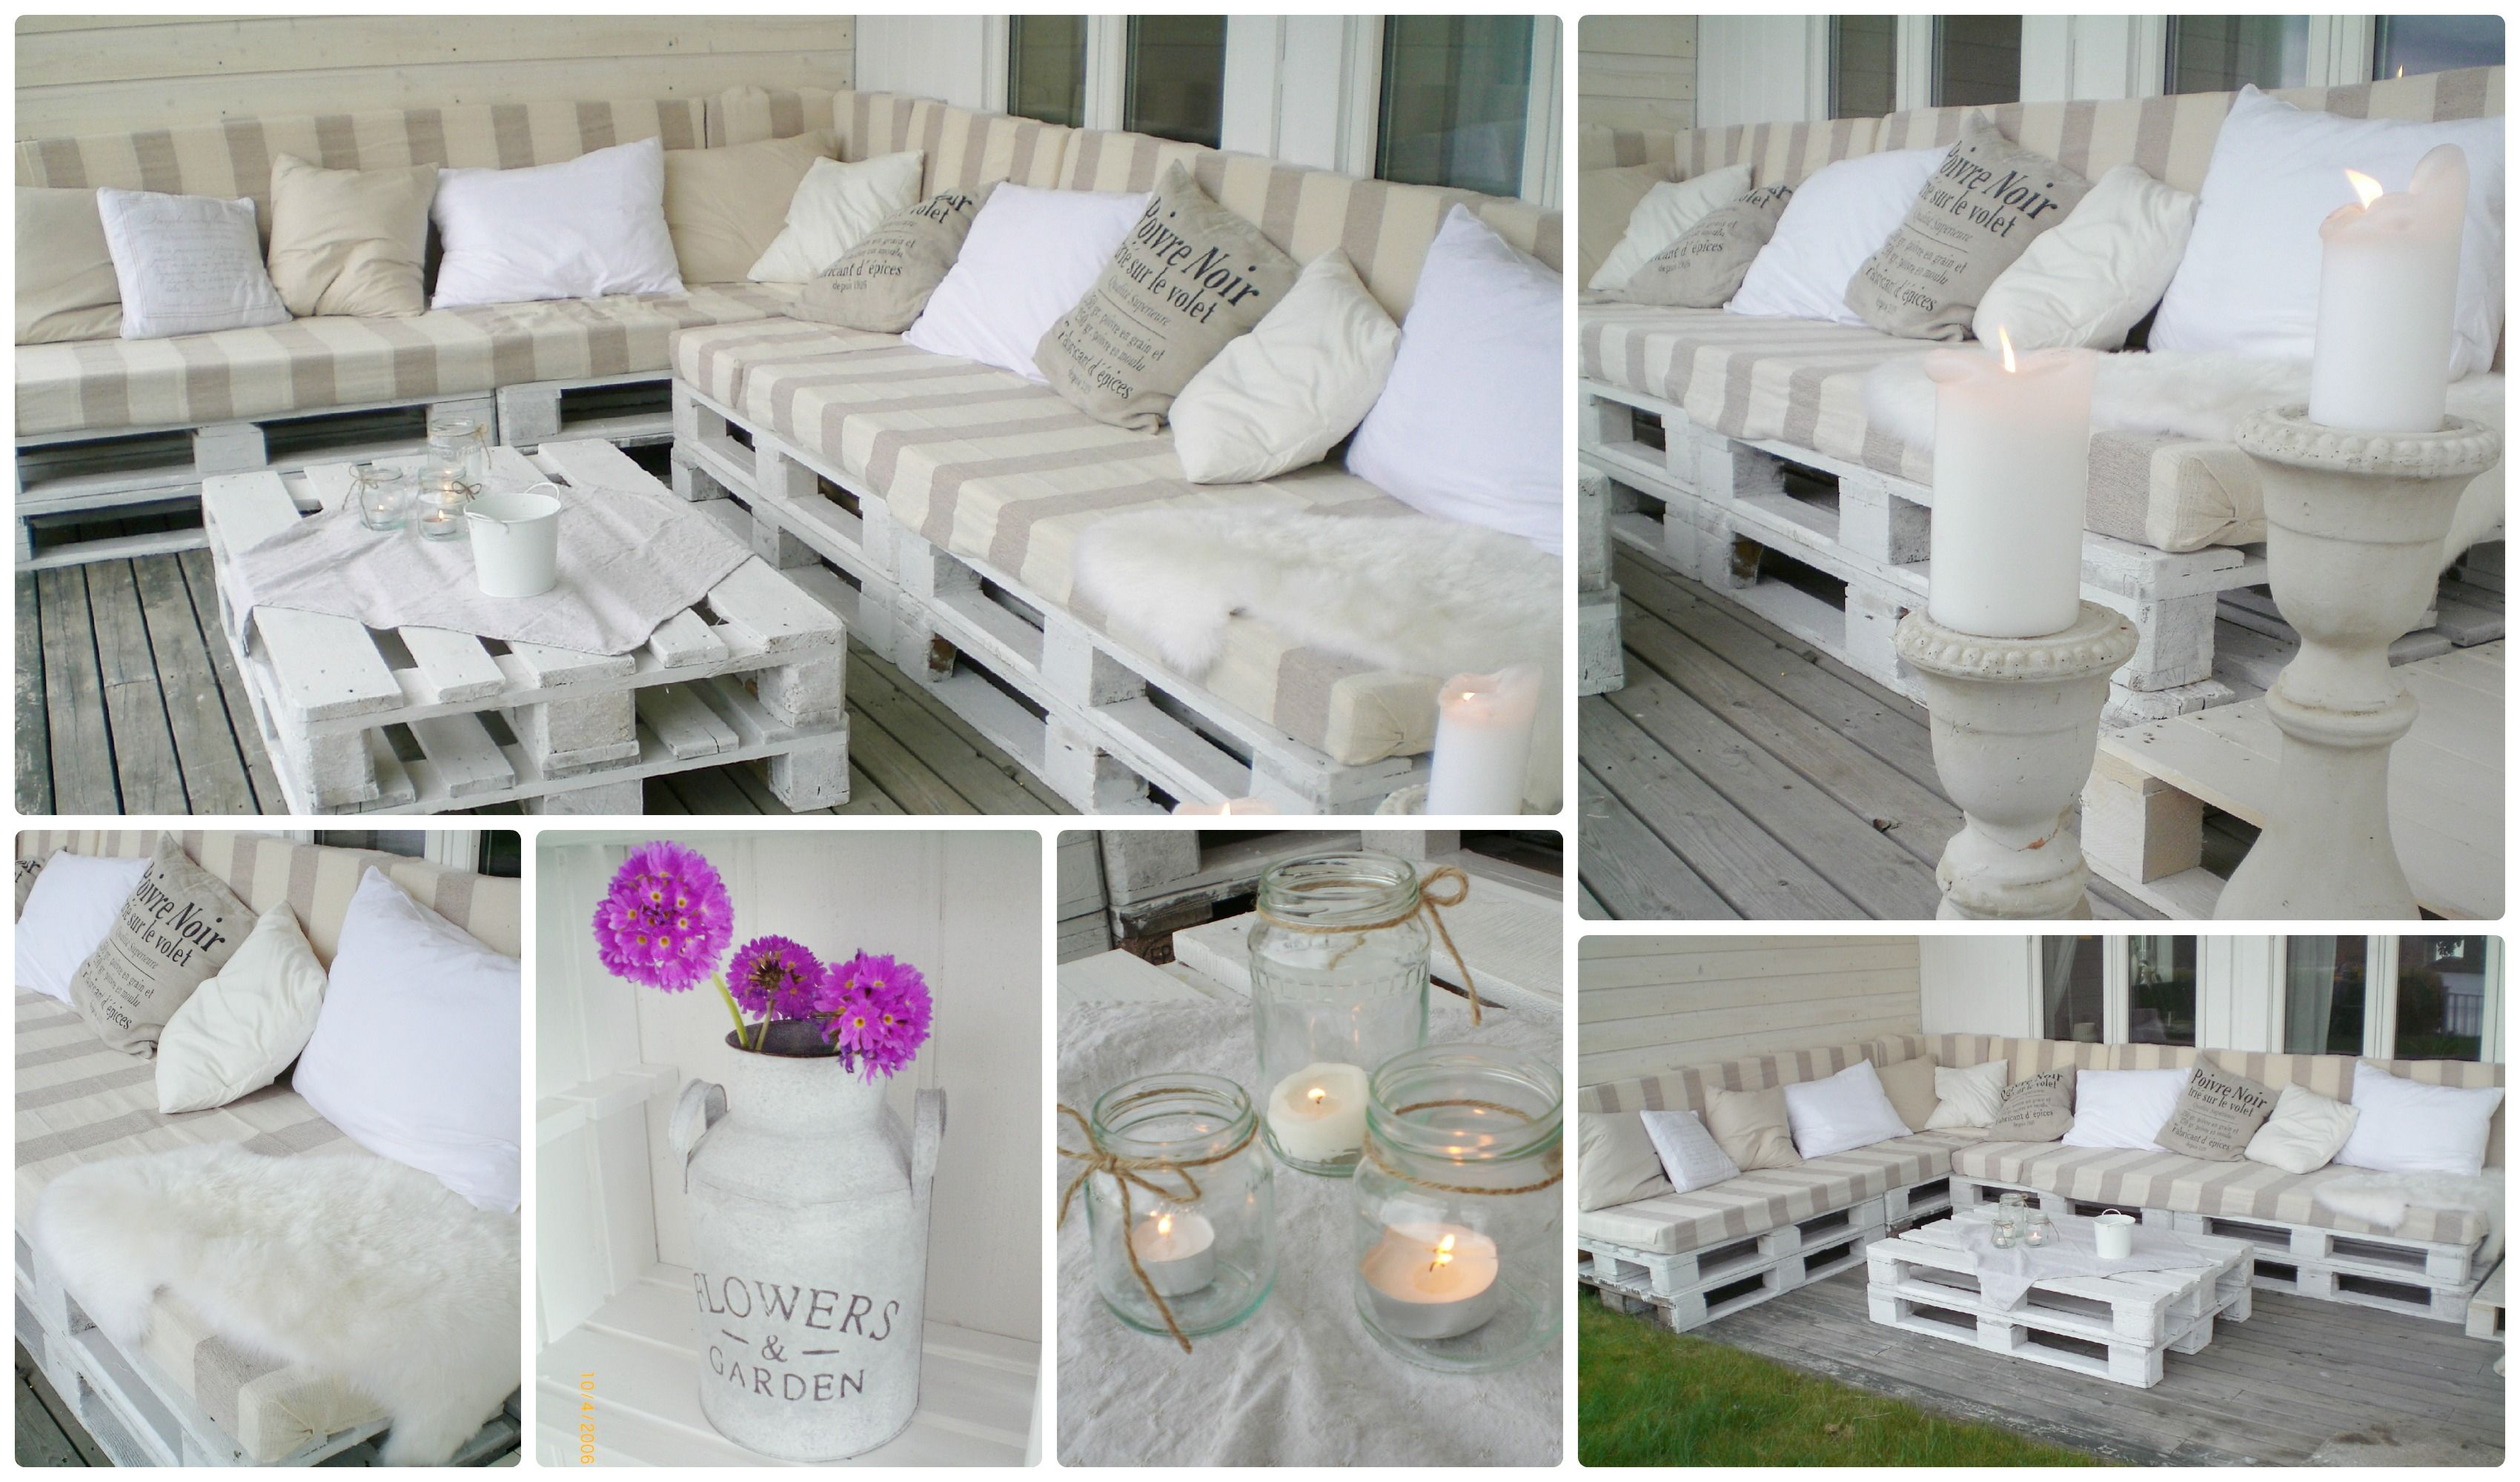 All made from shipping pallets painted white altan for White painted pallets